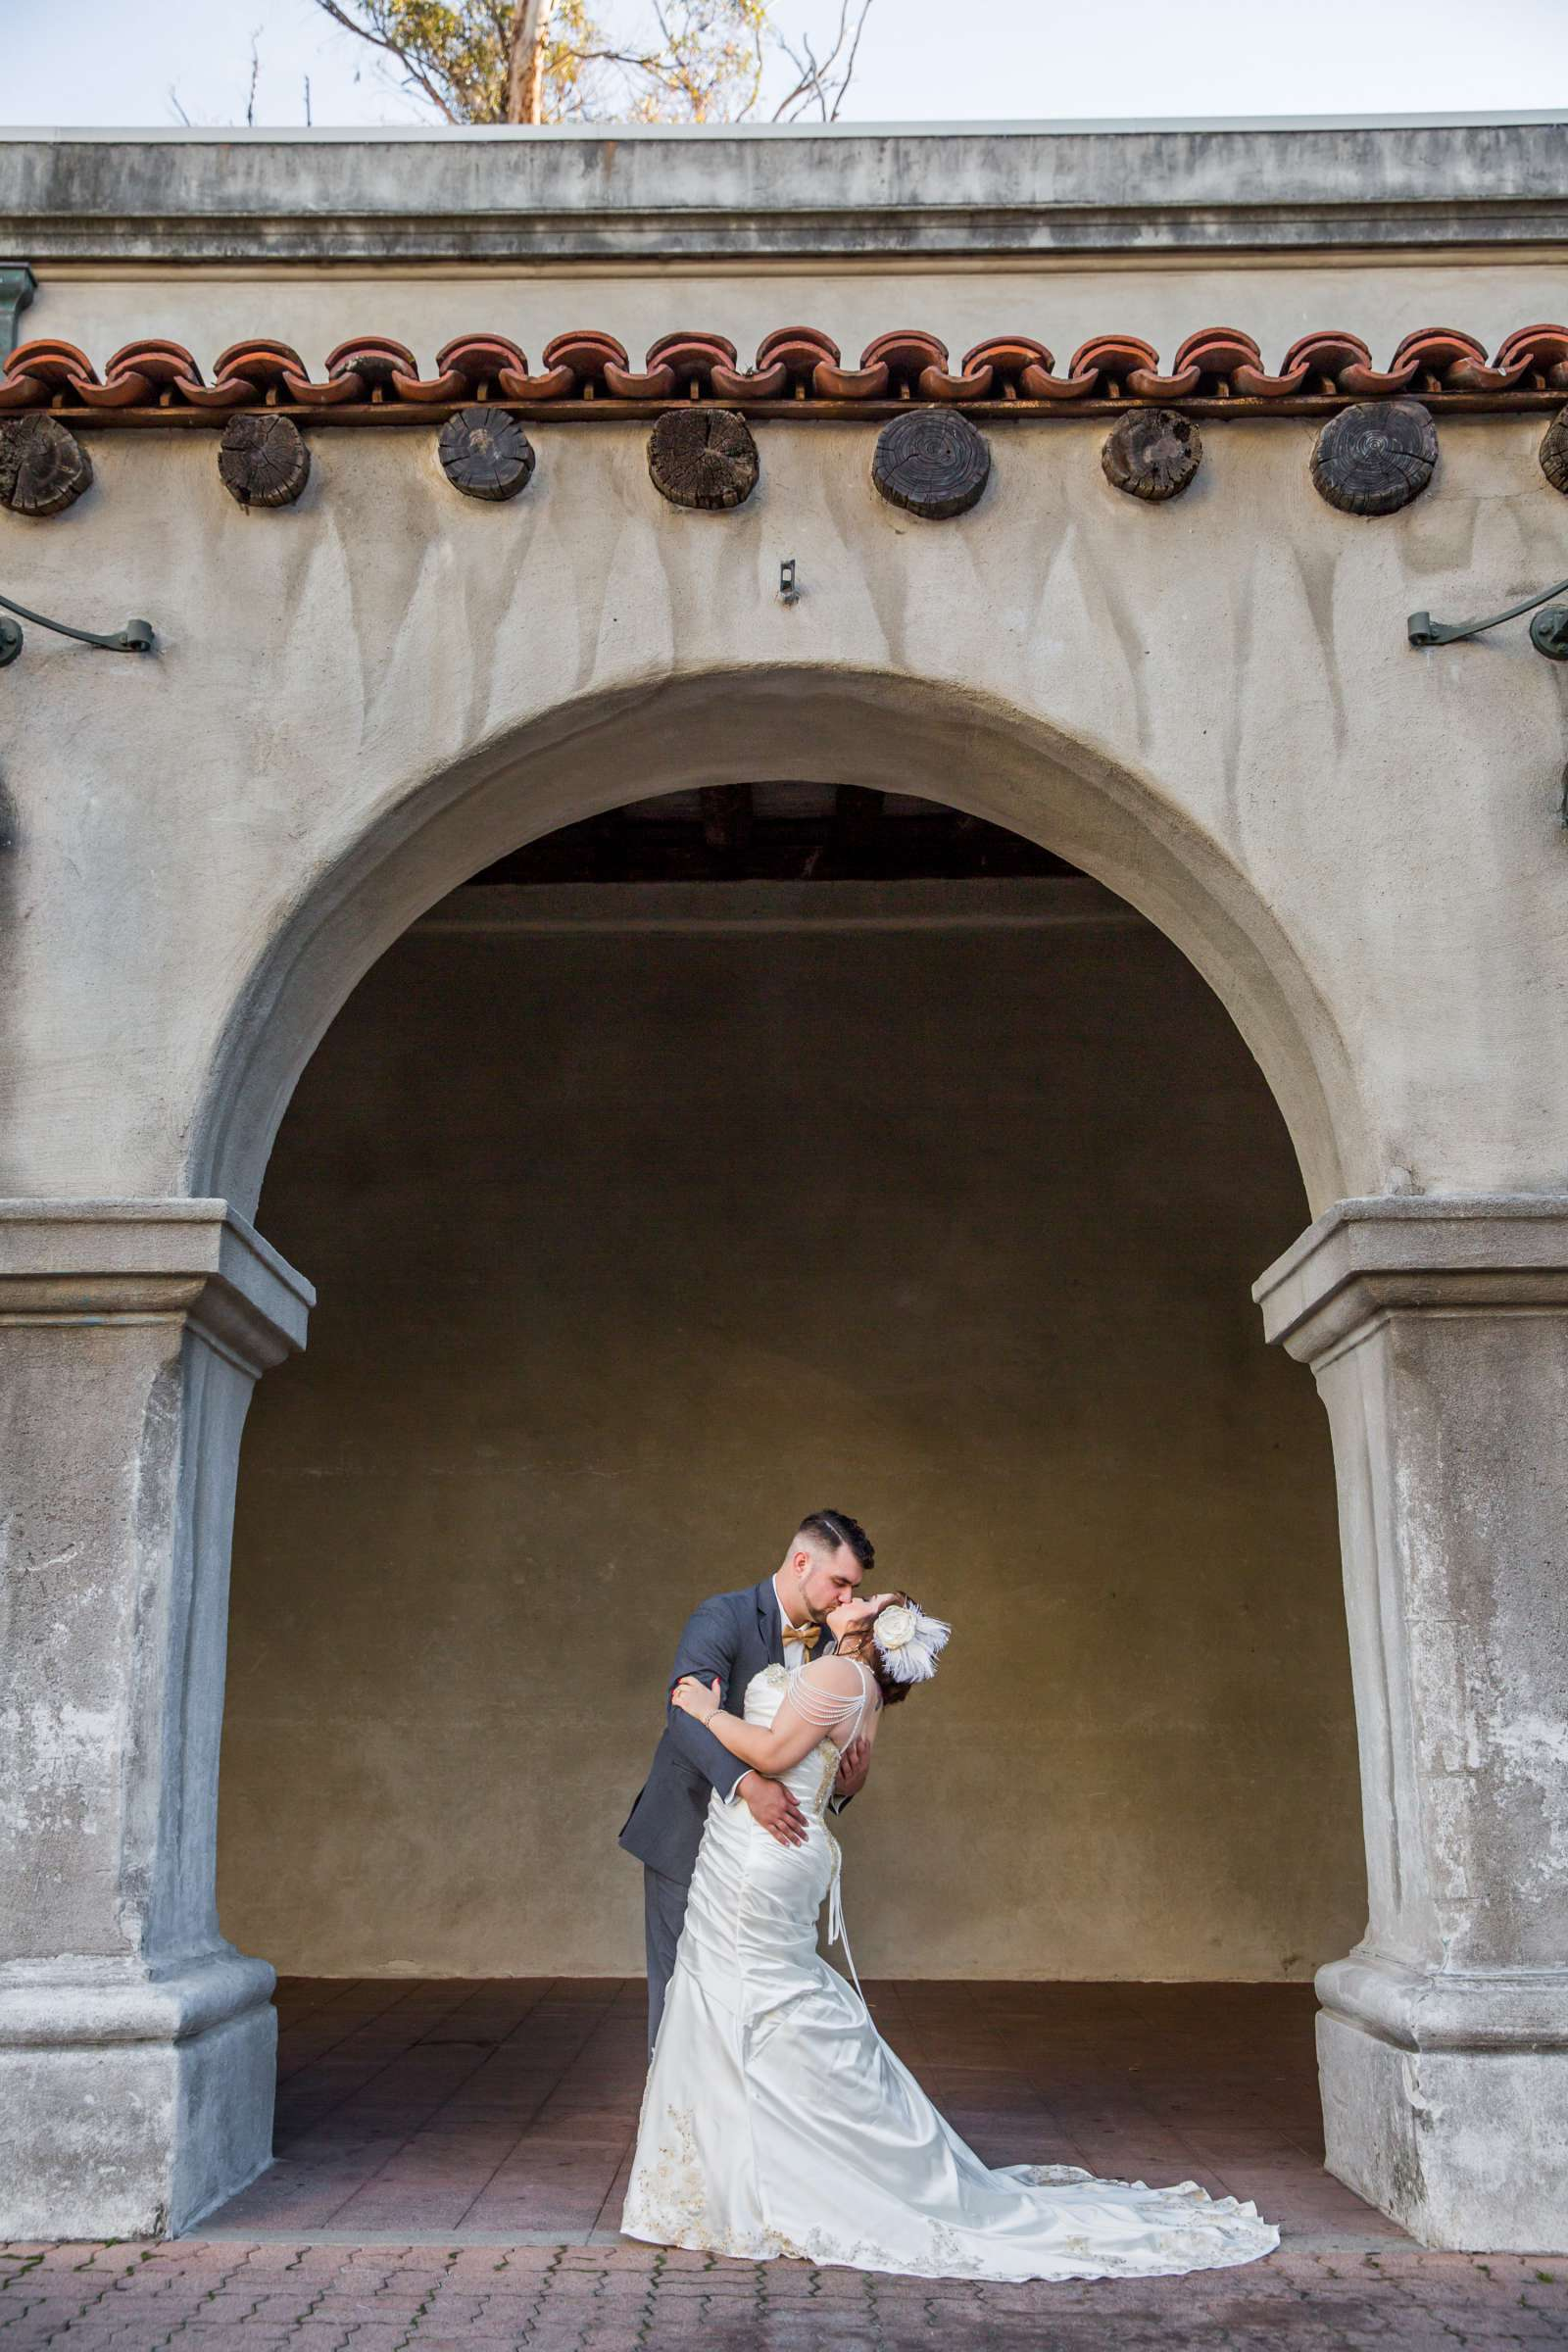 The Prado Wedding coordinated by Breezy Day Weddings, Aalis and Michael Wedding Photo #73 by True Photography